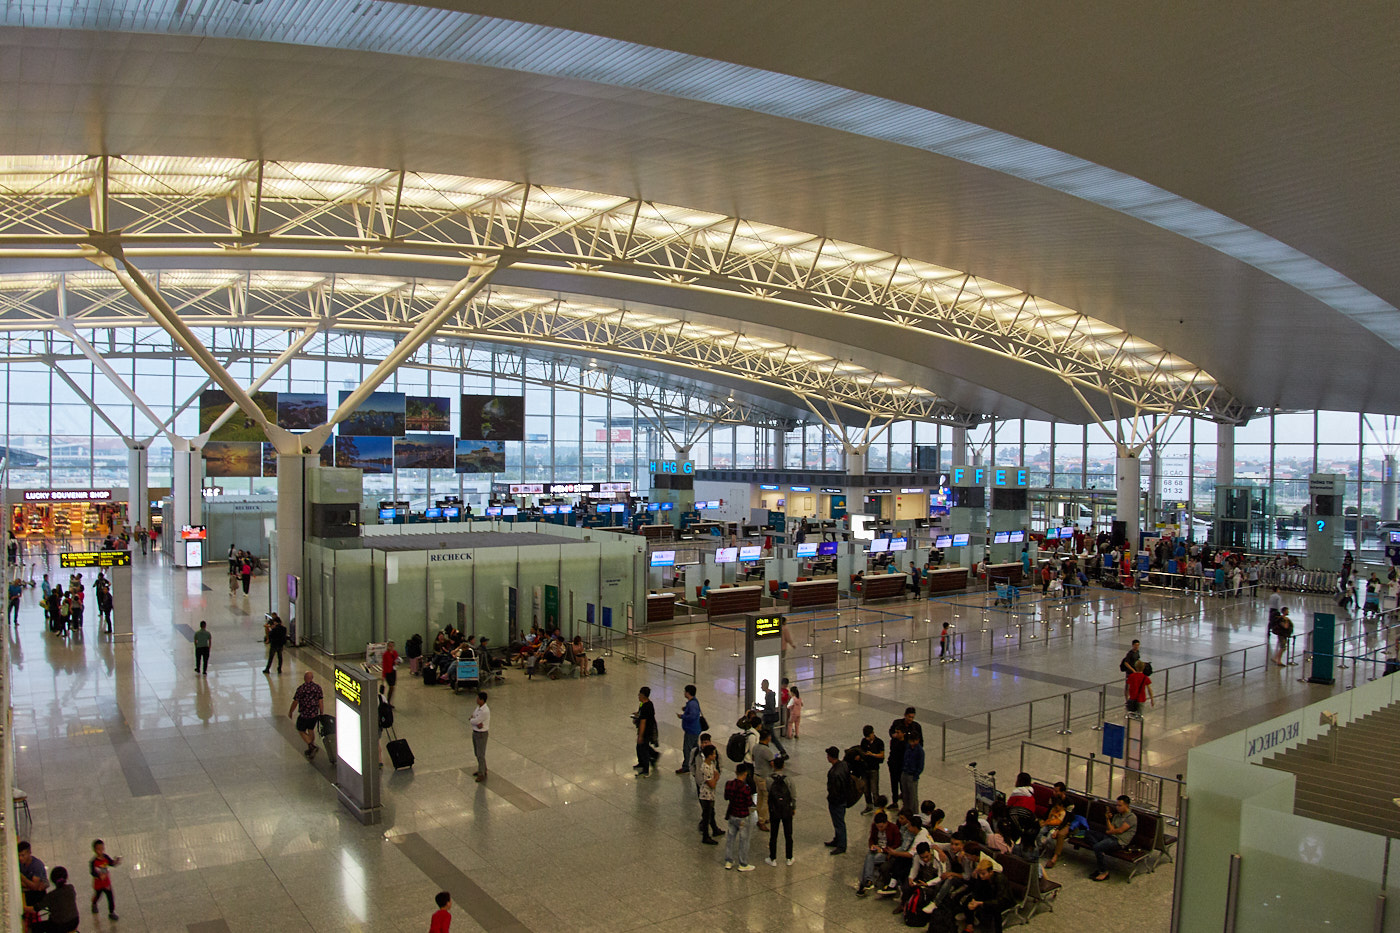 Noi Bai International Airport Hanoi